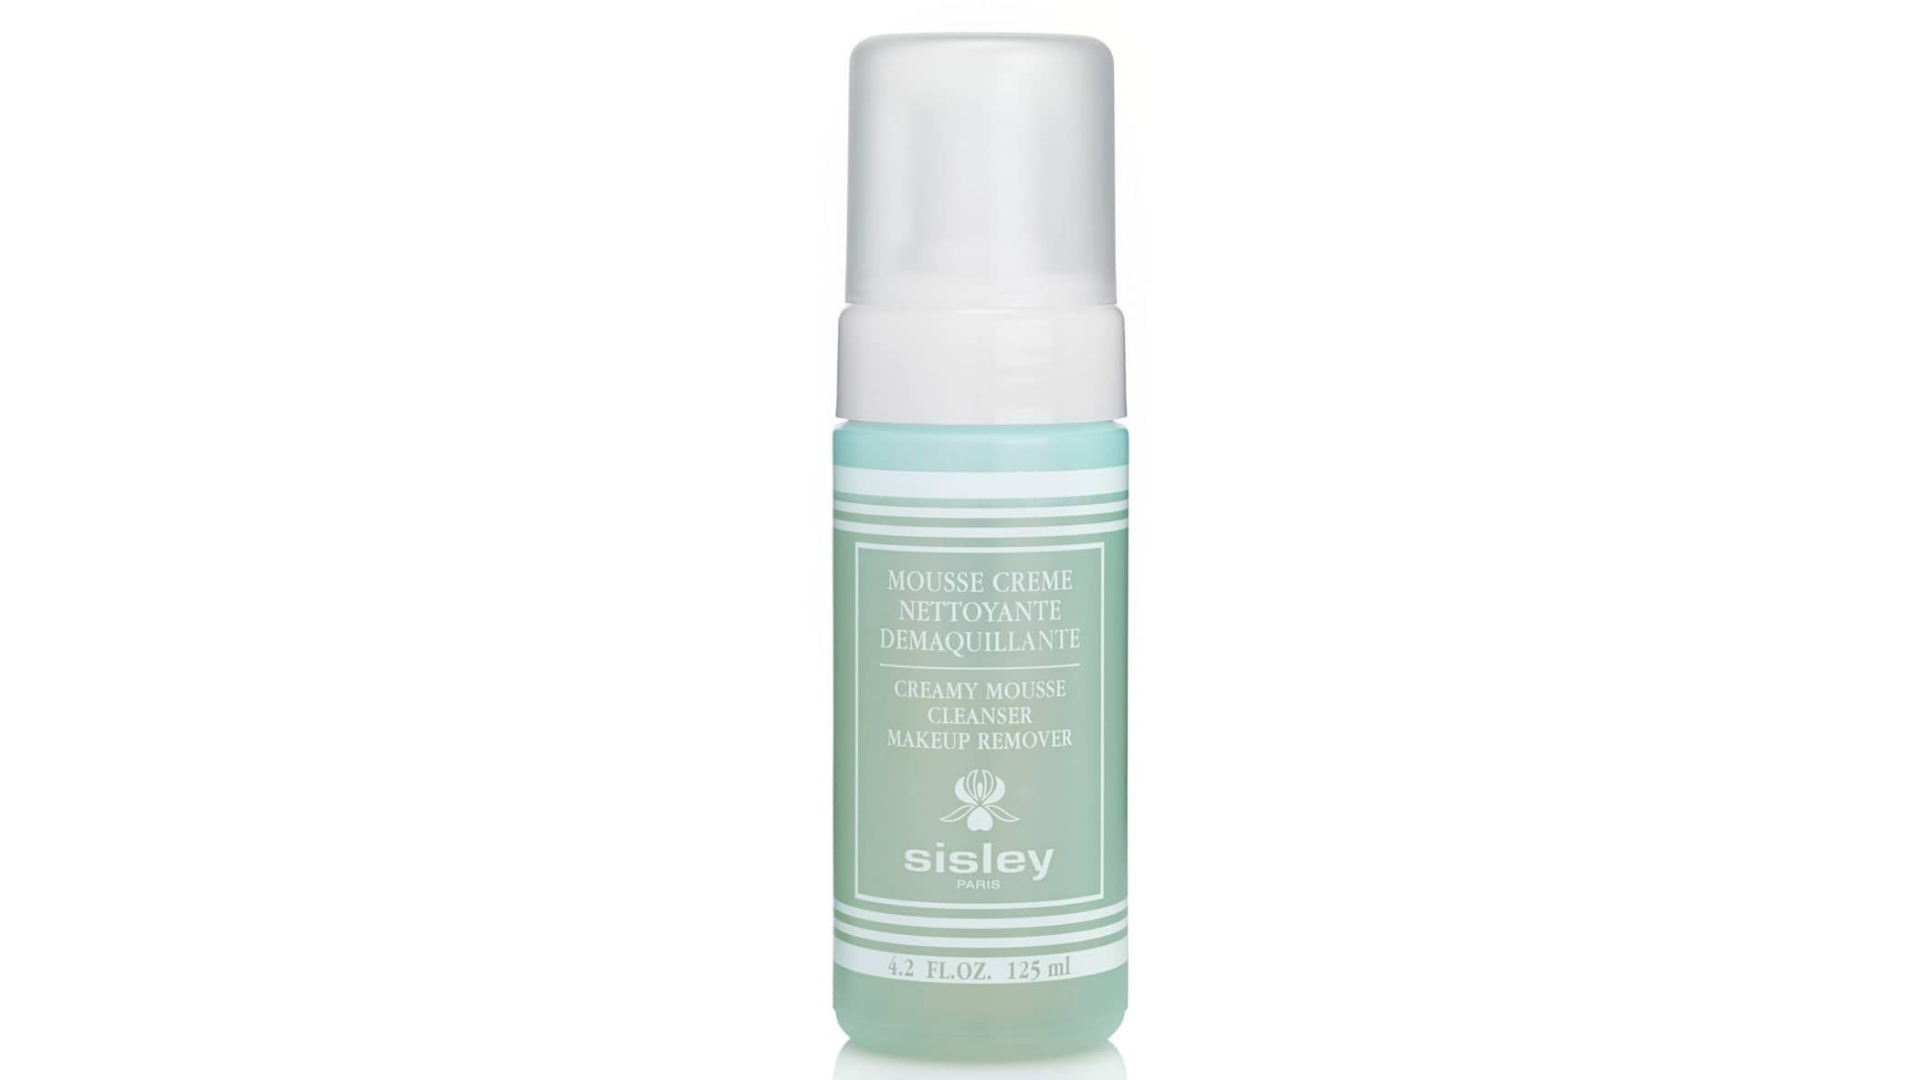 Sisley Creamy Mousse Cleanser